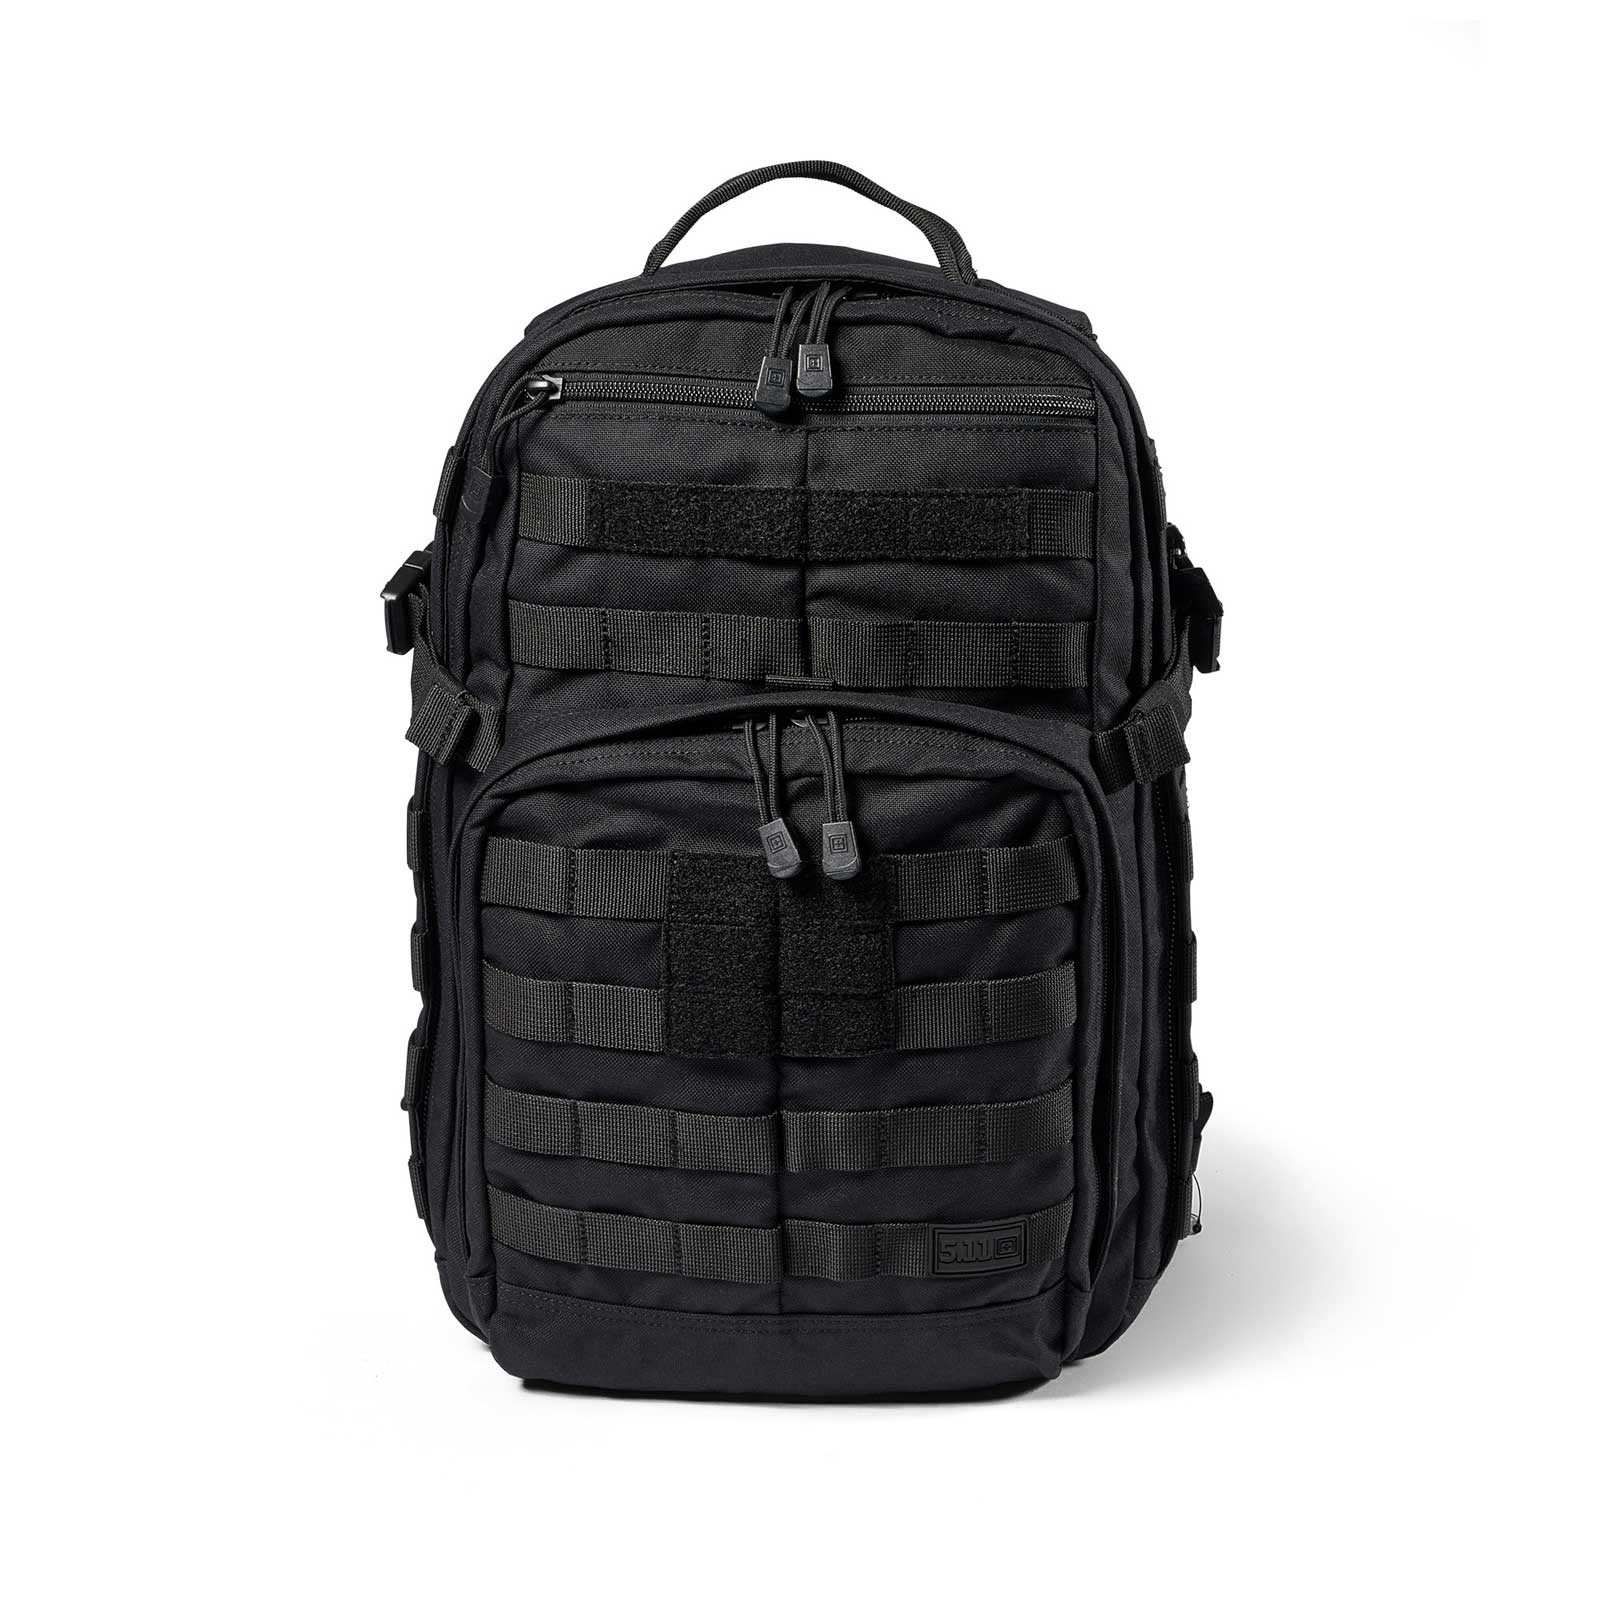 Balo 5.11 Tactical Rush 12 2.0 - Black